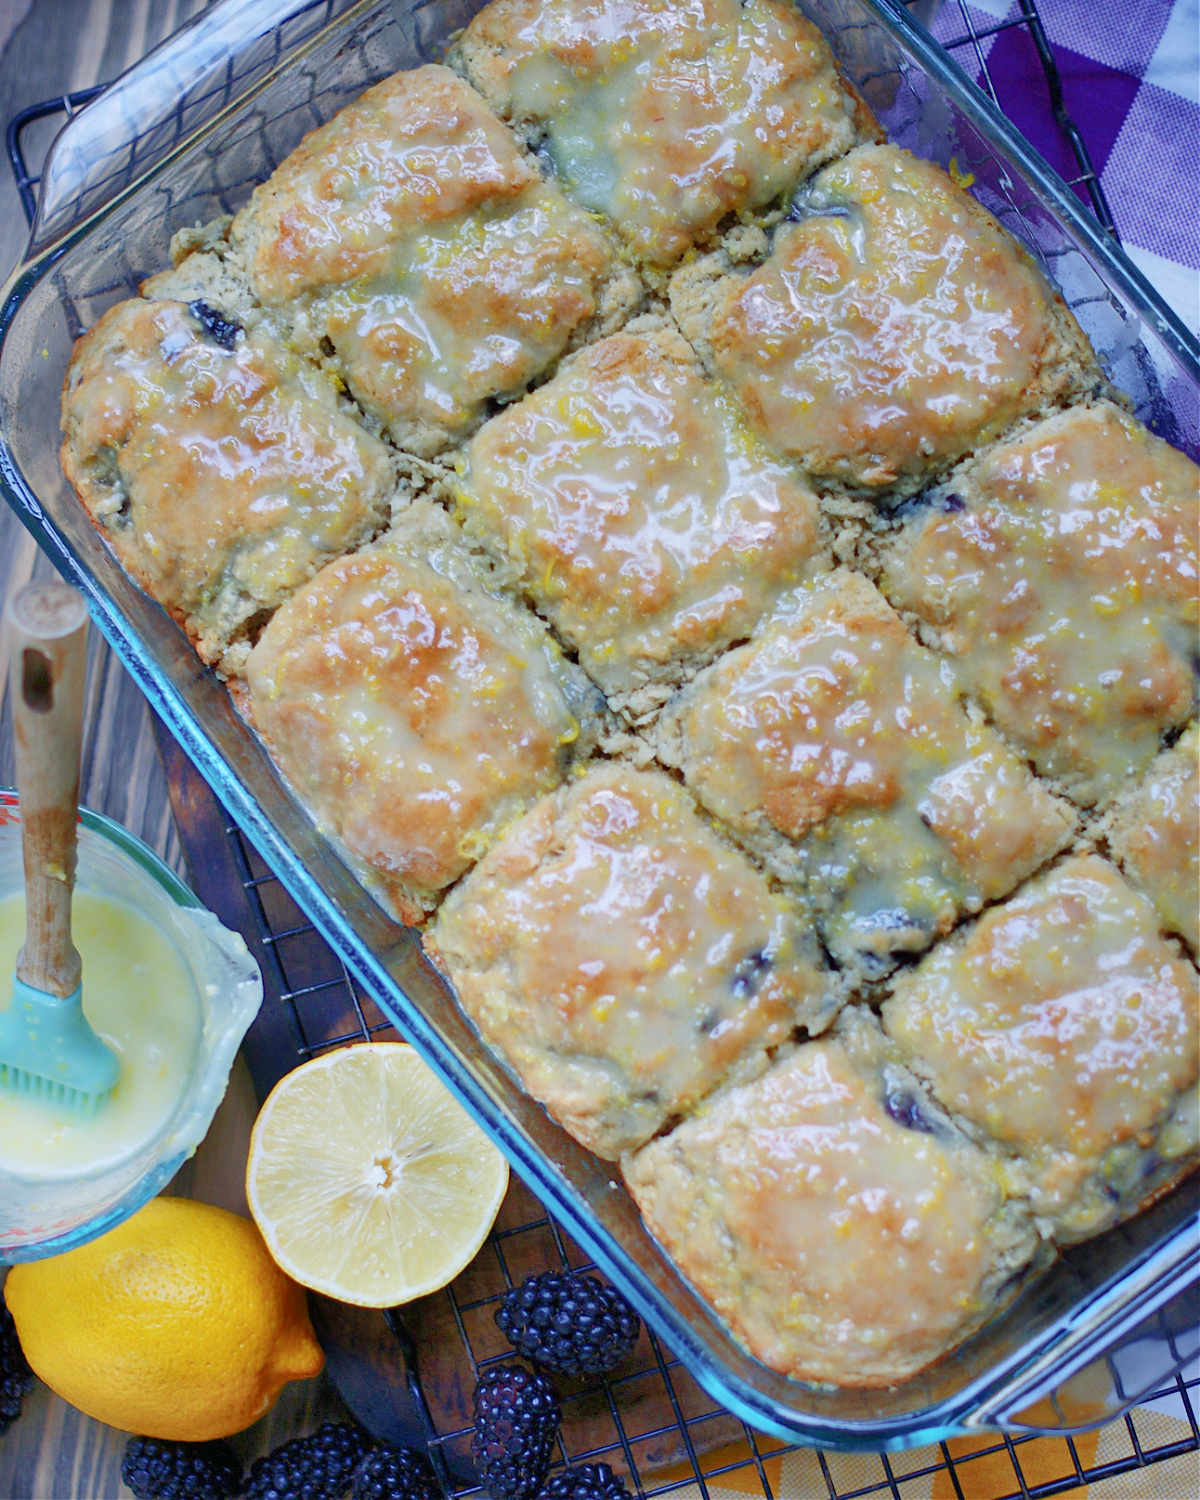 A pan of blackberry biscuits with lemon glaze